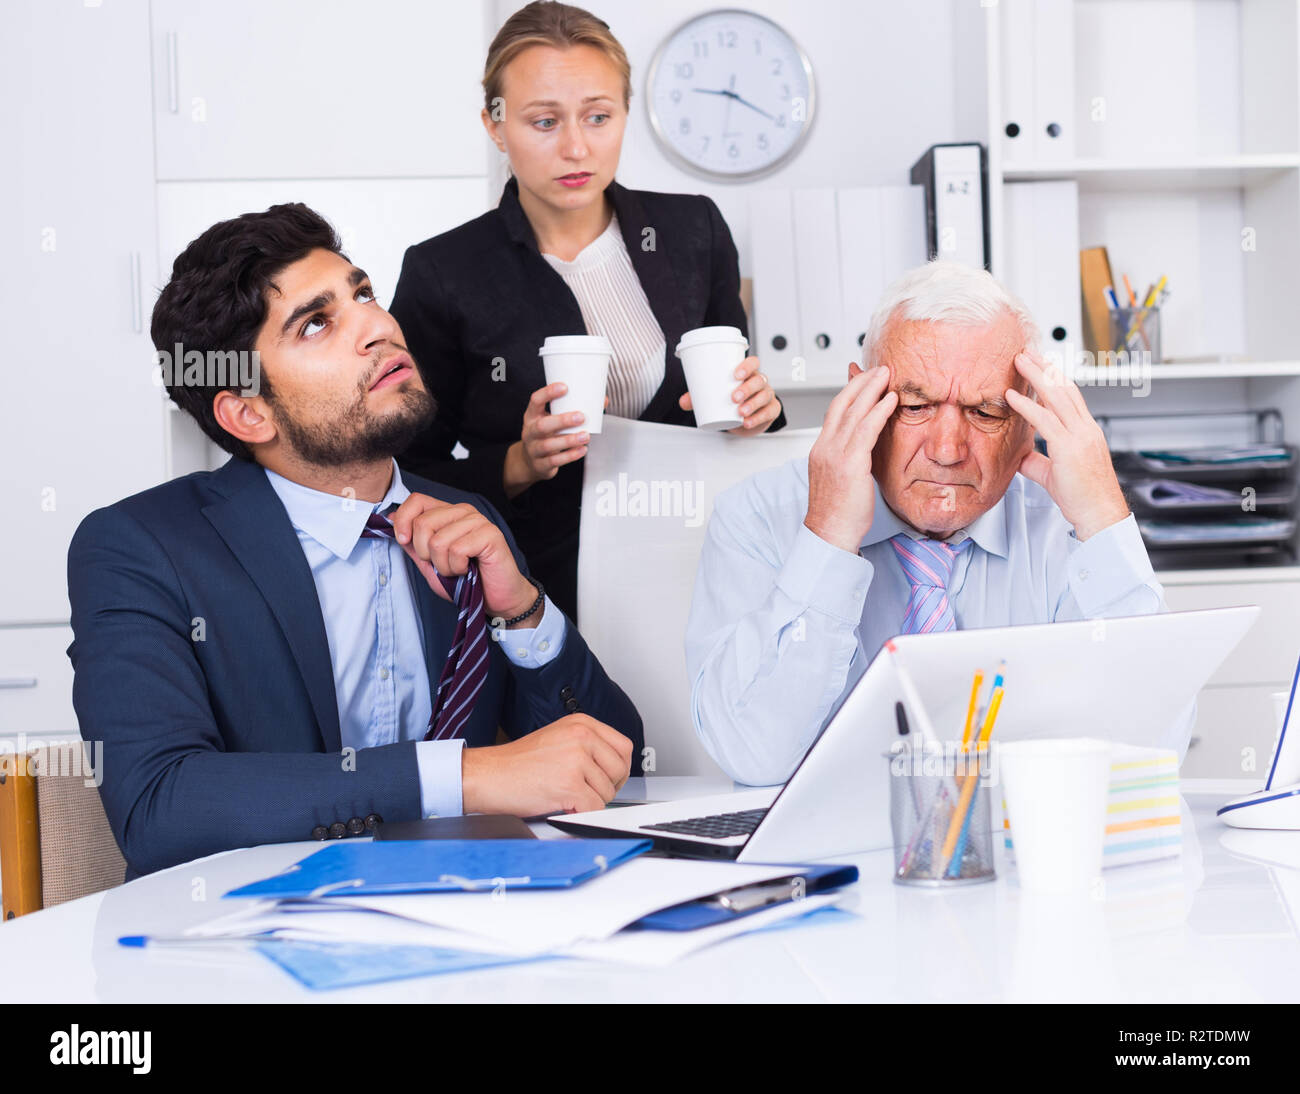 Mature boss is having complicated issue with reports made by subordinates in office. - Stock Image